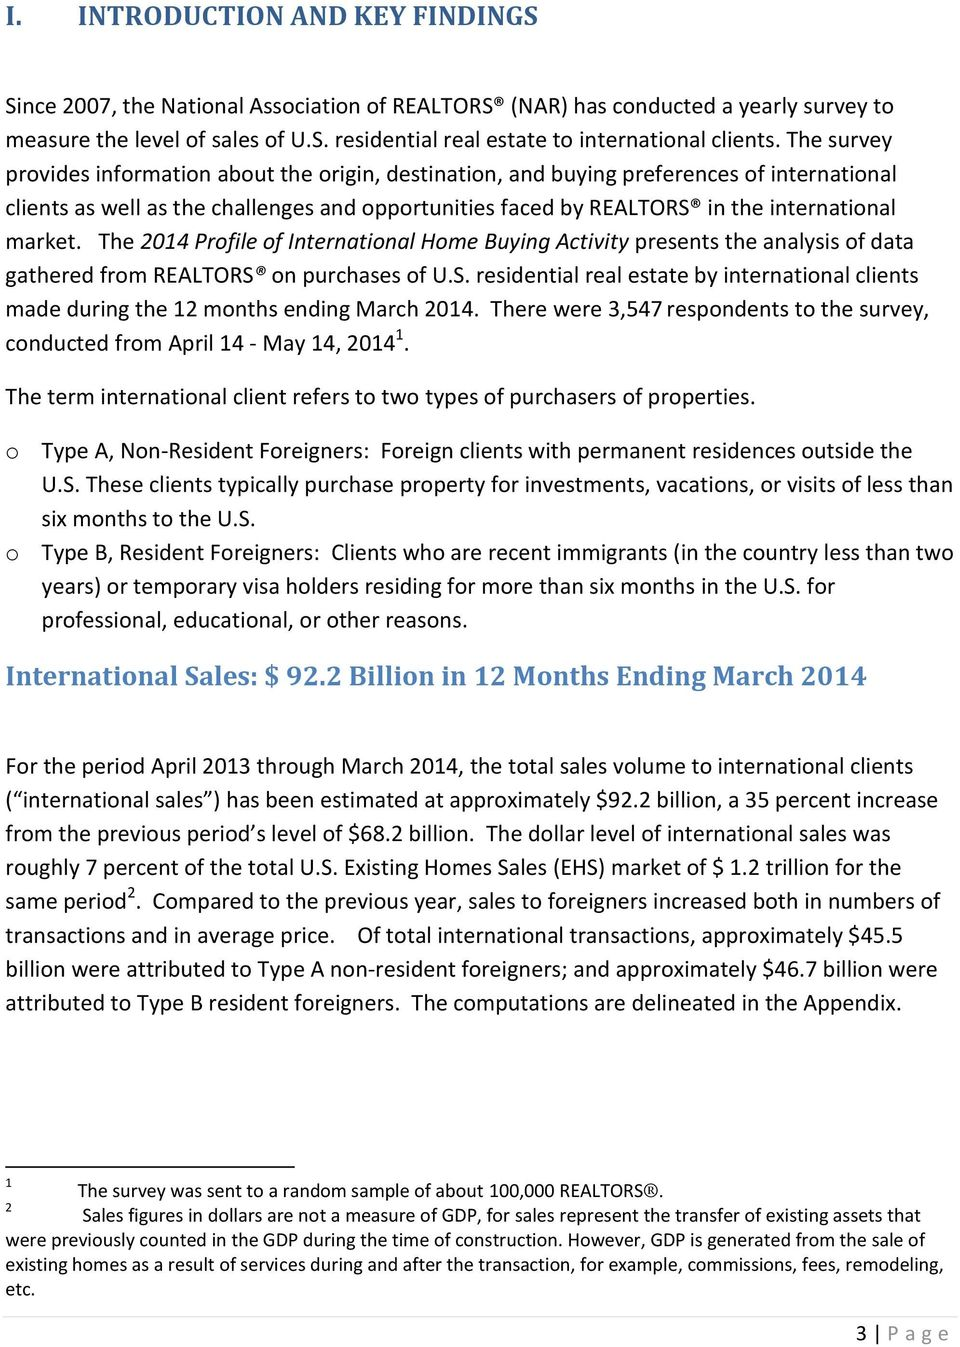 market. The 2014 Profile of International Home Buying Activity presents the analysis of data gathered from REALTORS